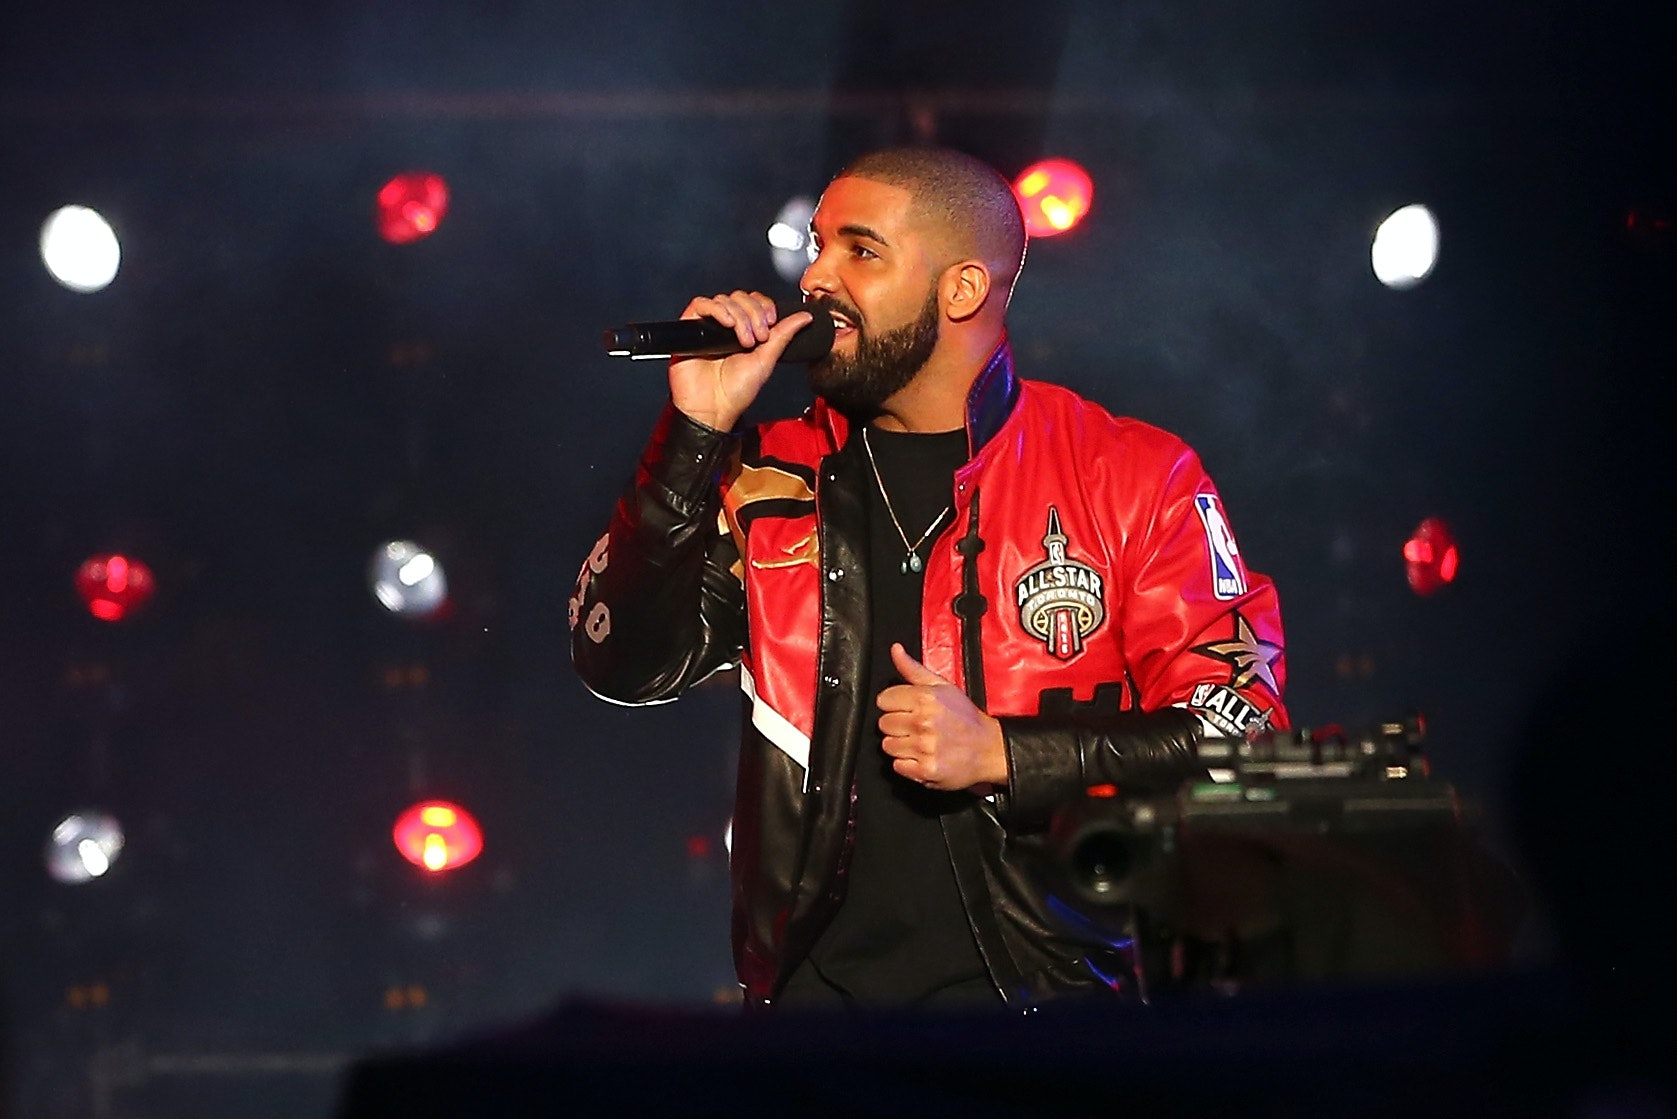 Every Drake Song Made intended for what do drake's 'pop style' lyrics mean? the song is definitely